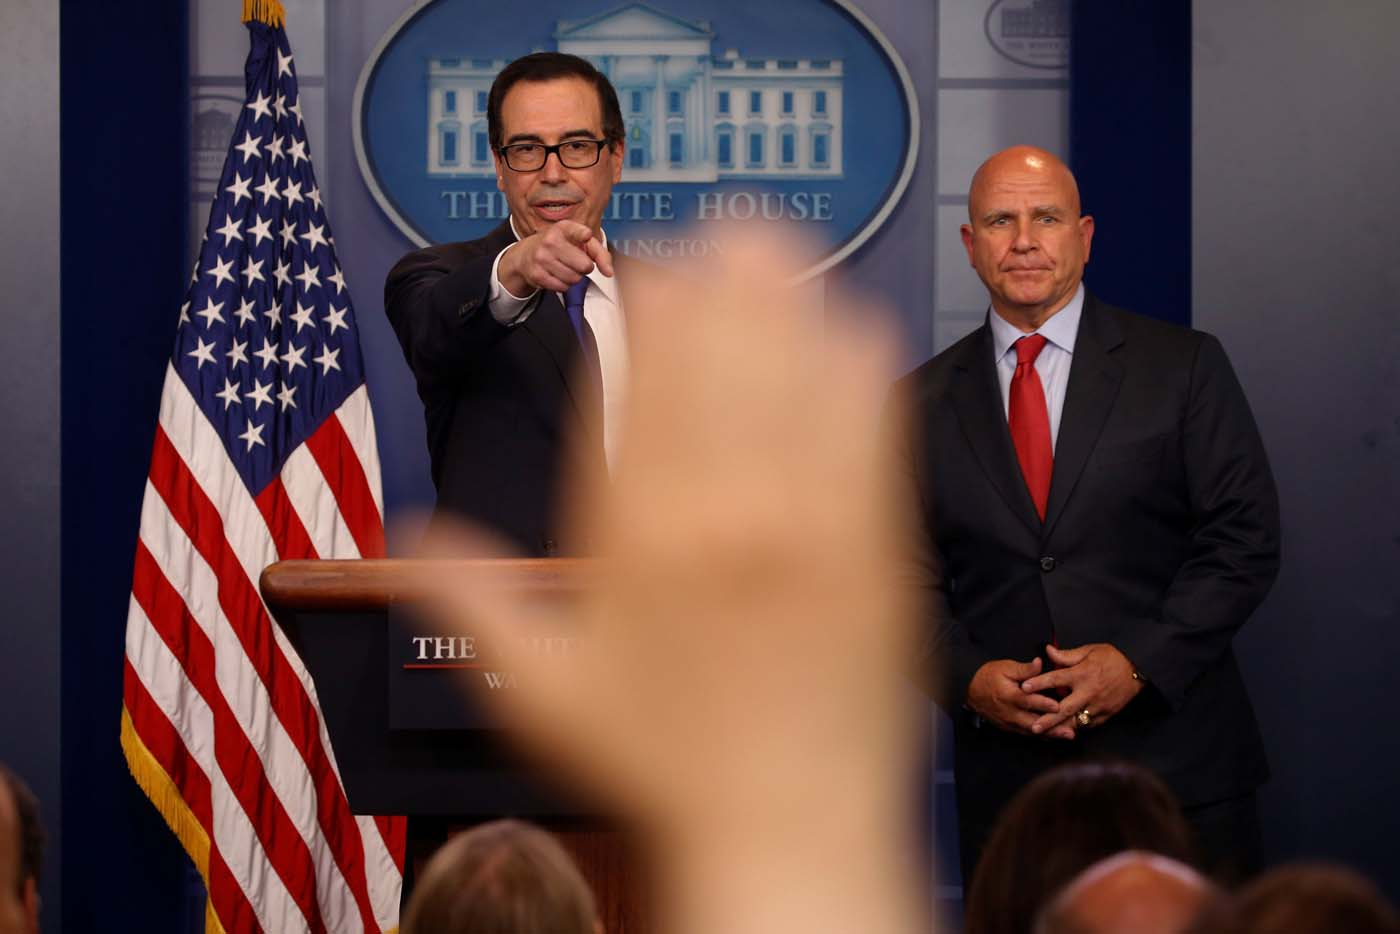 U.S. Treasury Secretary Steven Mnuchin (L) and National Security Advisor H.R. McMaster address sanctions on Venezuelan President Nicolas Maduro during the daily press briefing at the White House in Washington, U.S., July 31, 2017. REUTERS/Jonathan Ernst